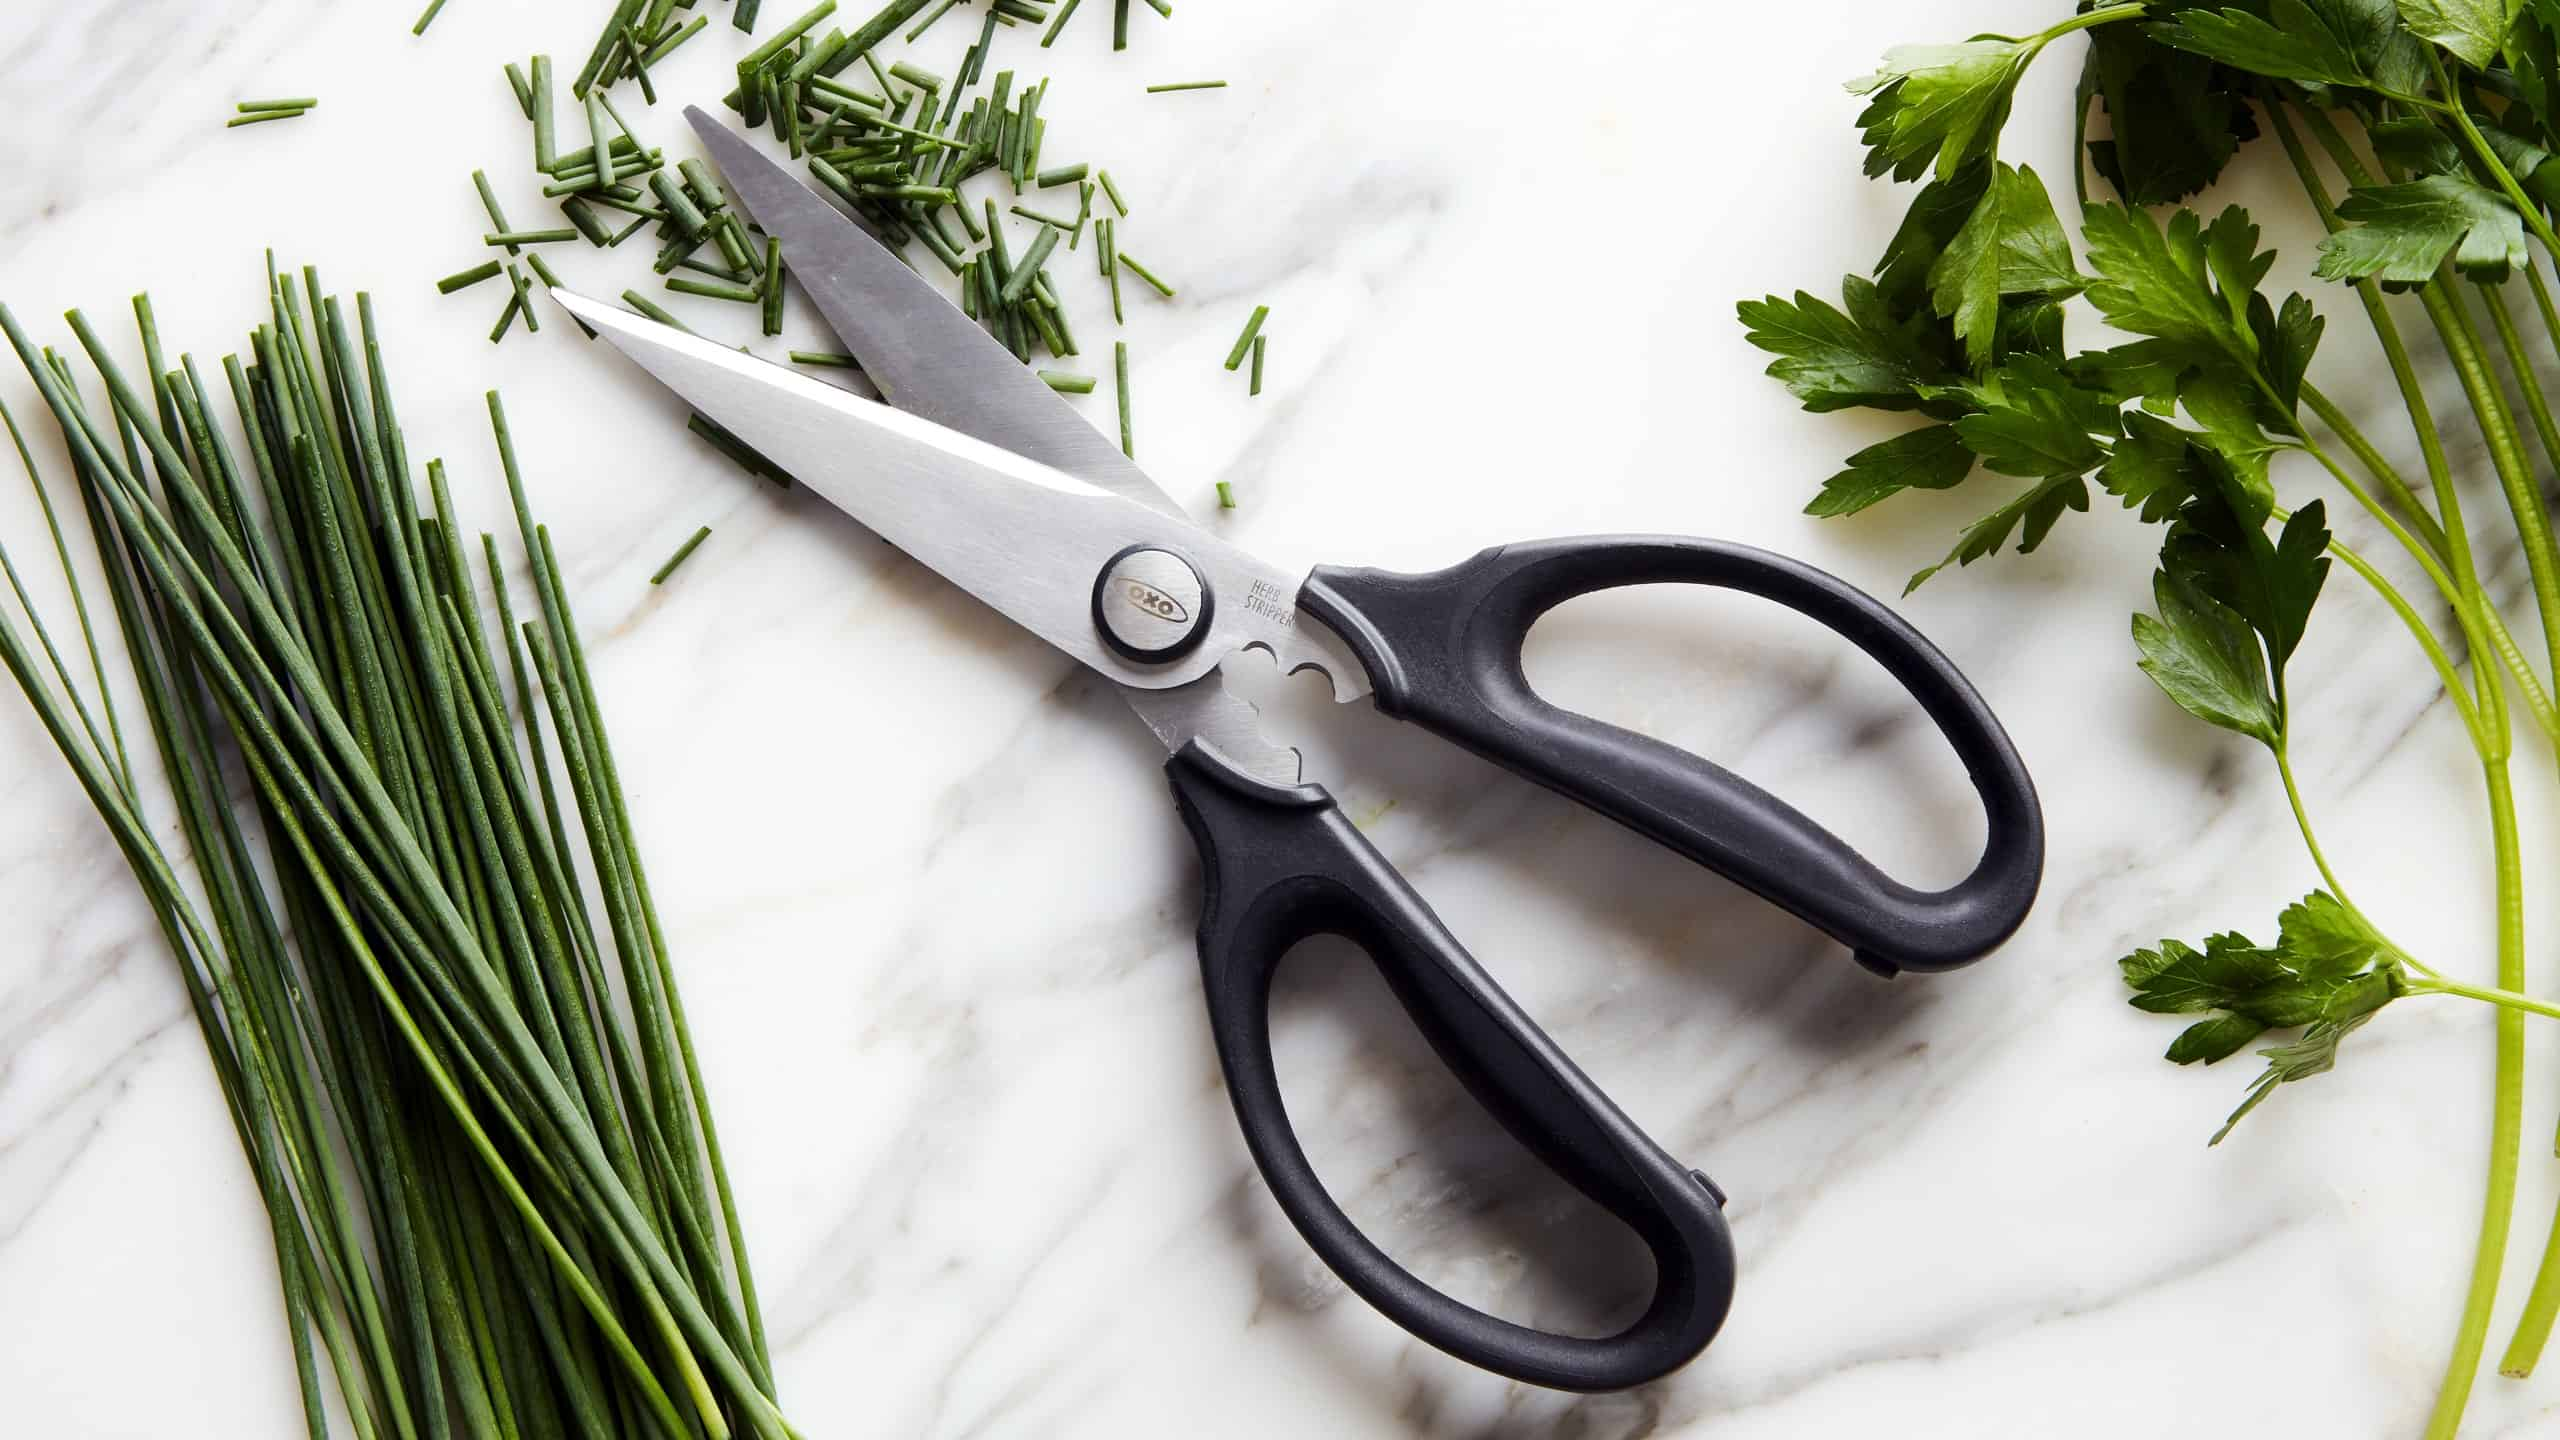 Best Kitchen Shears on the Market